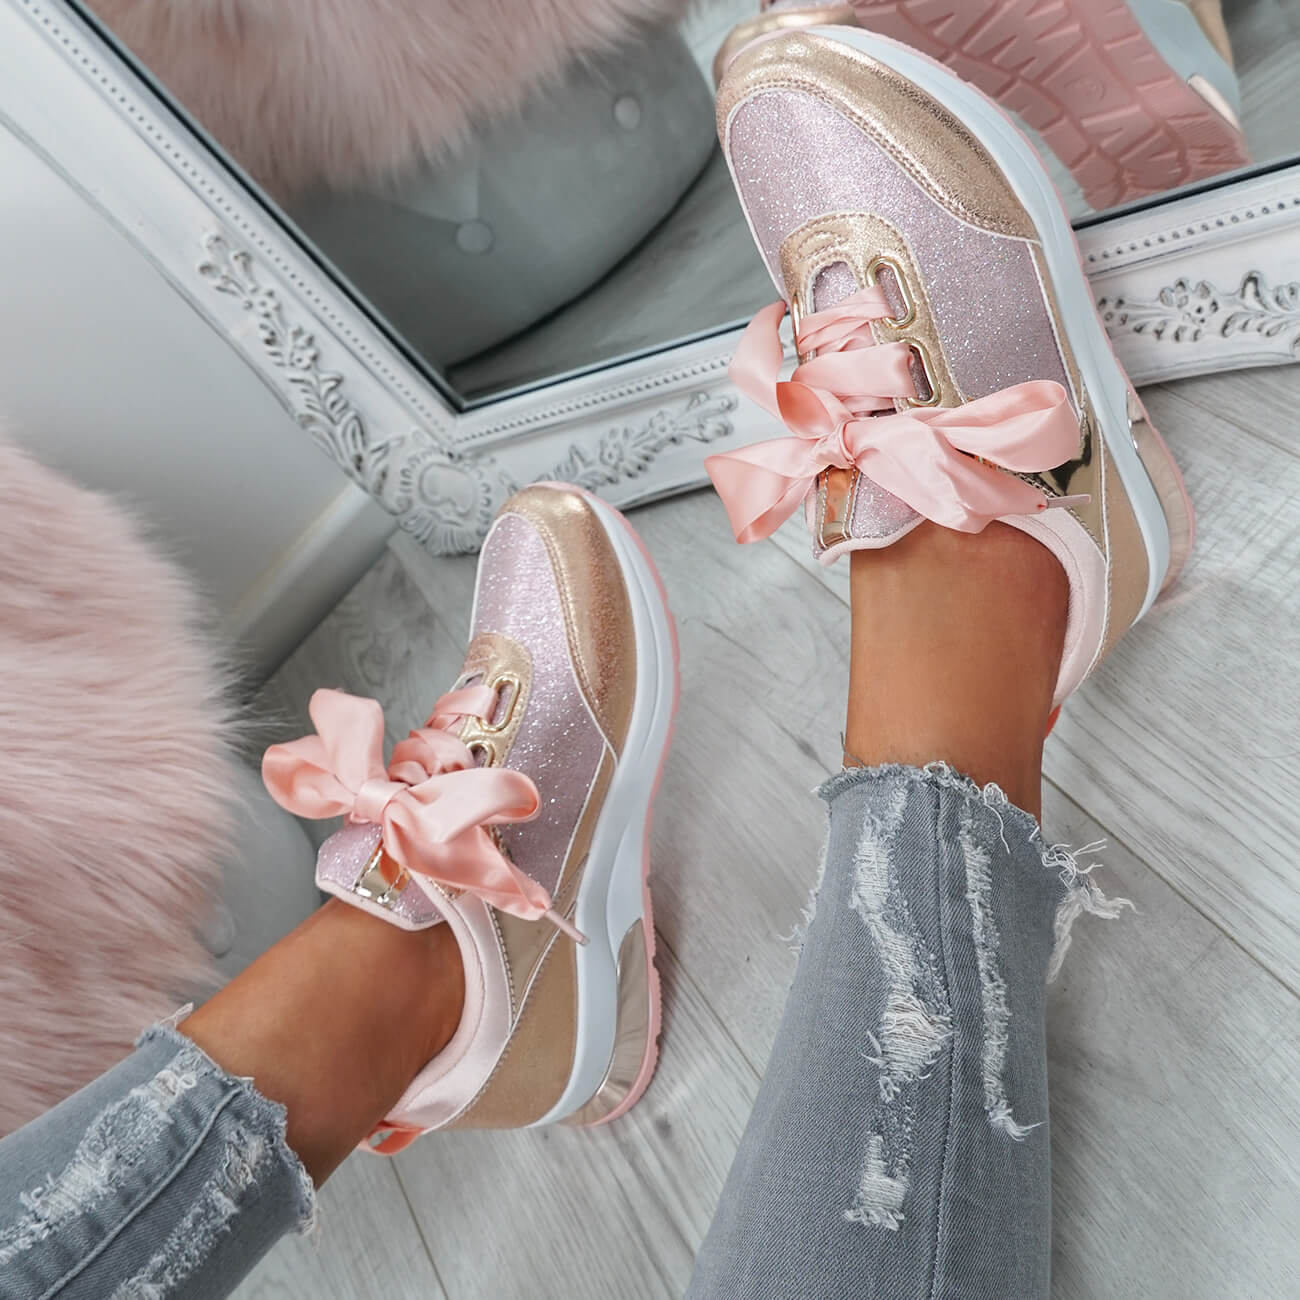 WOMENS-LADIES-RIBBON-TRAINERS-GLITTER-SPARKLE-SNEAKERS-RUNNING-FASHION-SHOES thumbnail 14